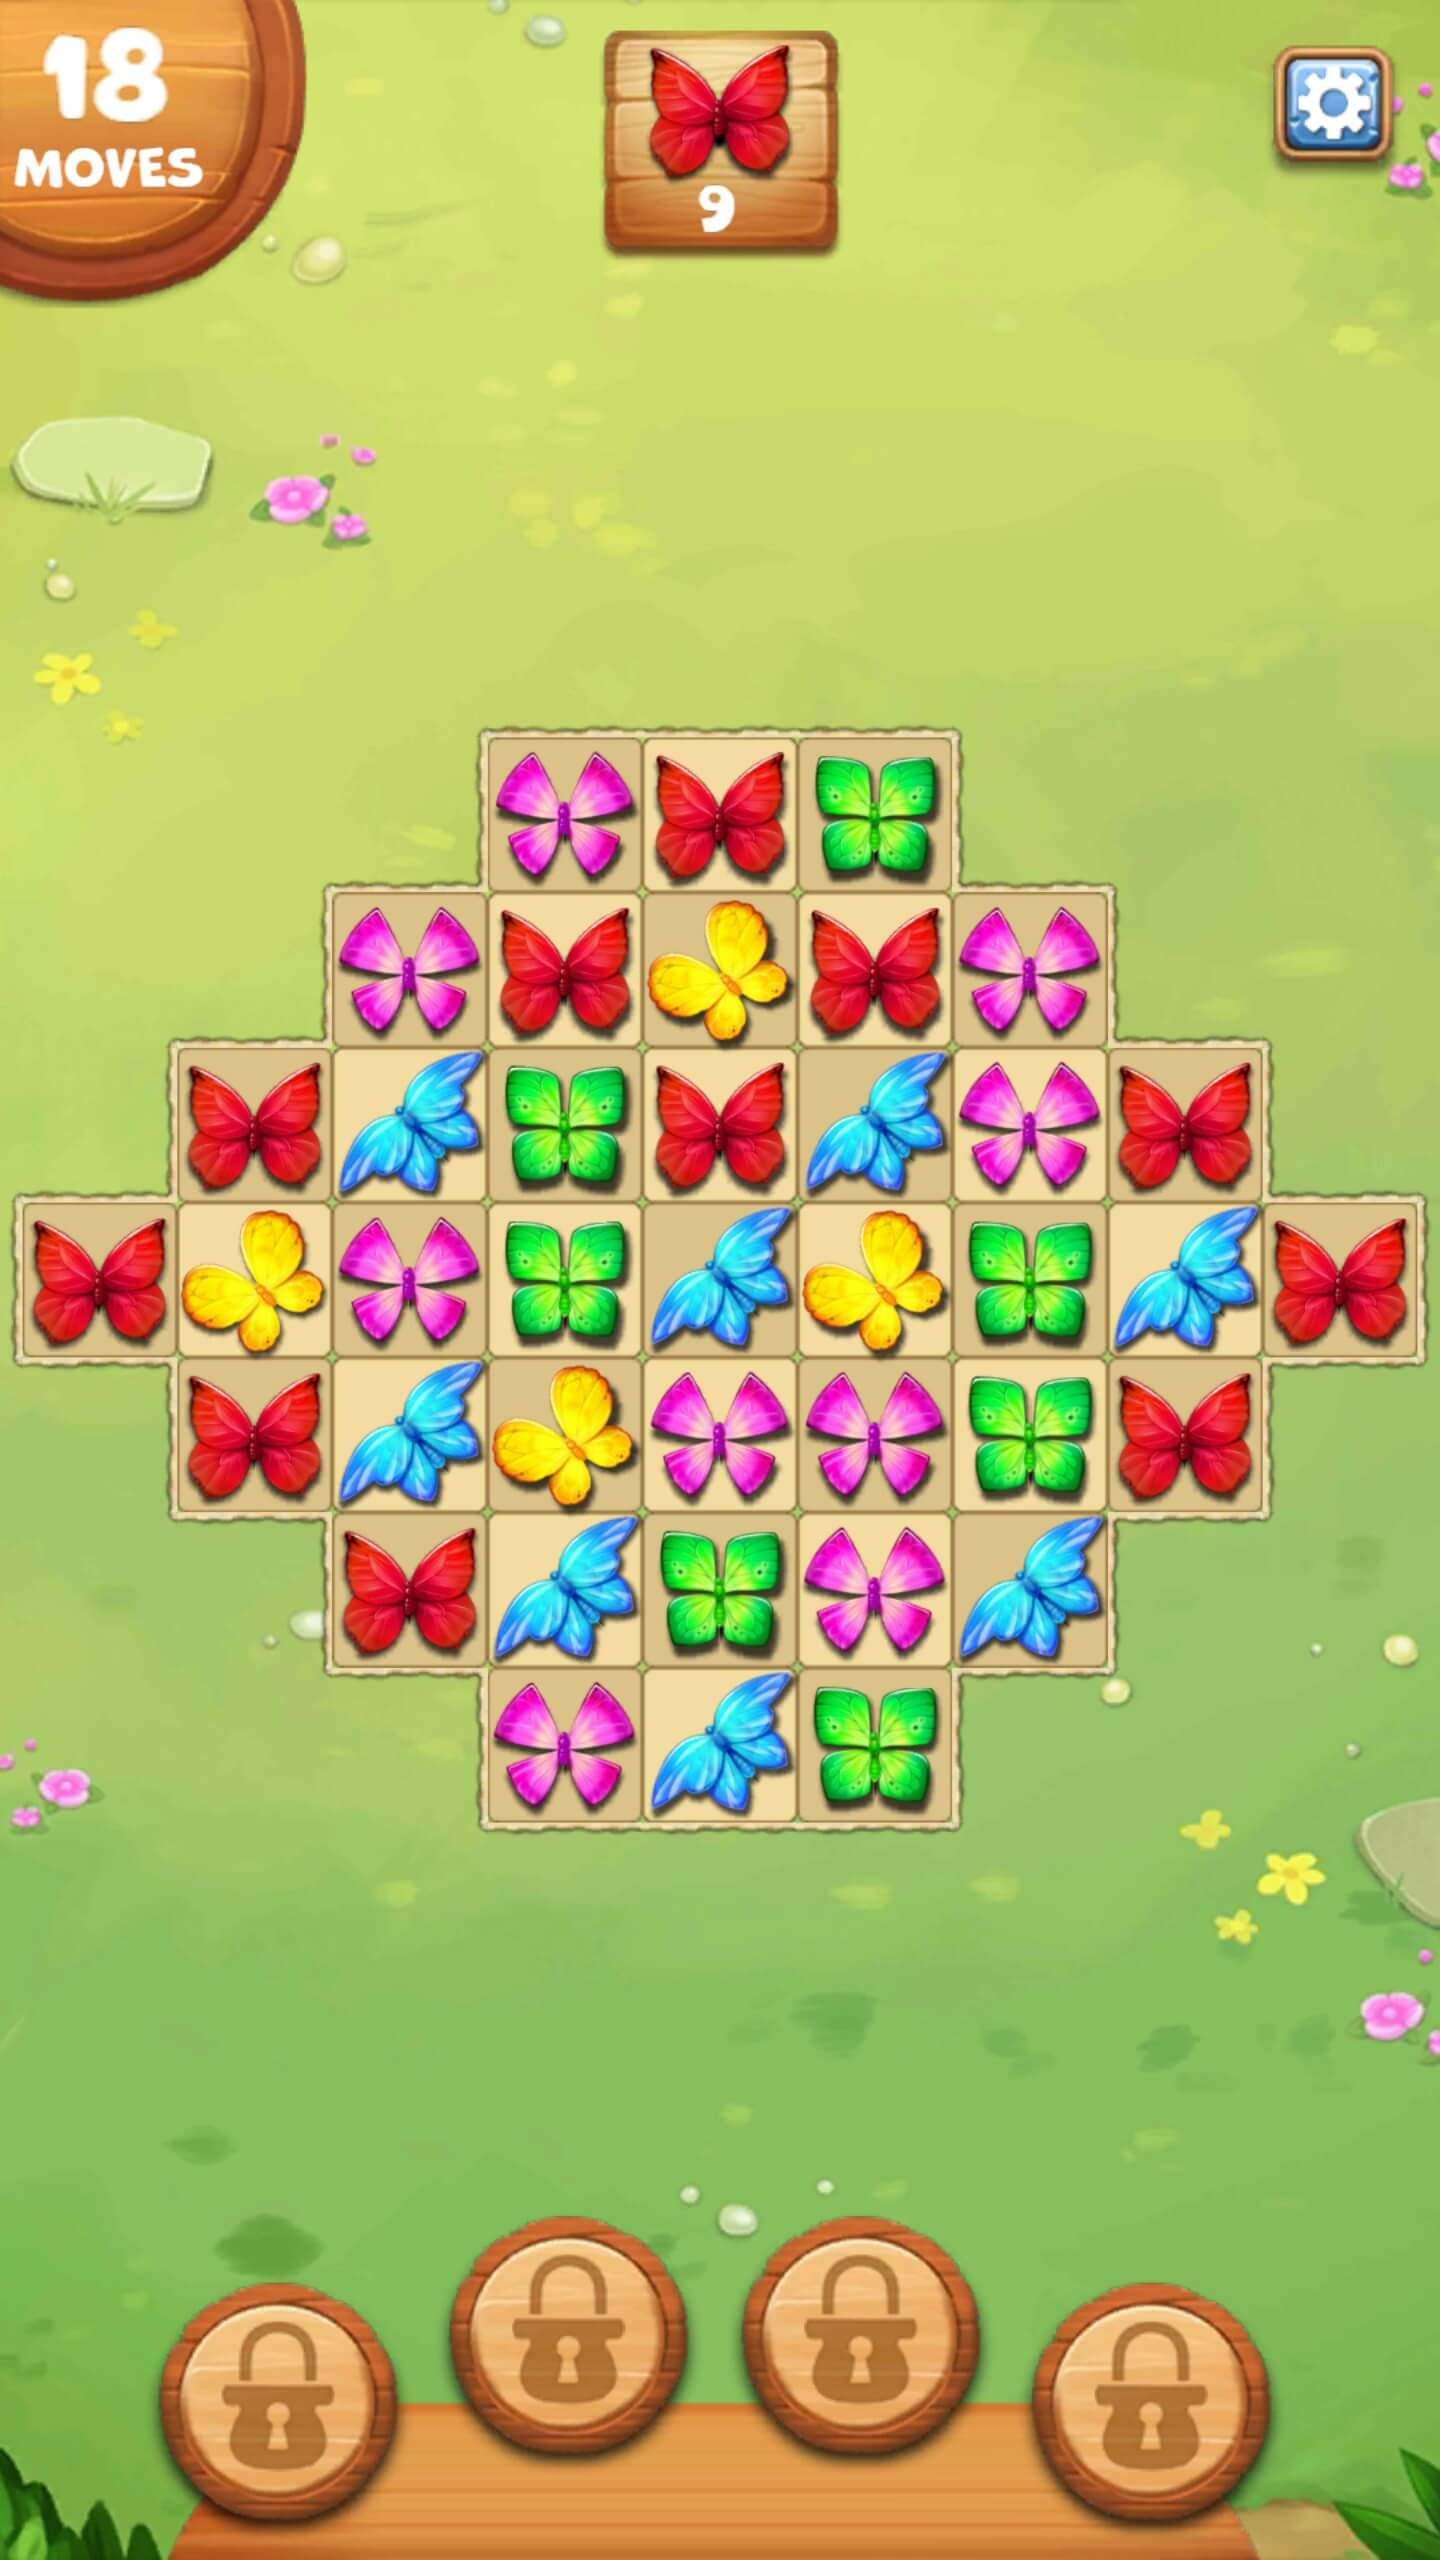 Butterfly Garden Mystery - Free Casual Games!